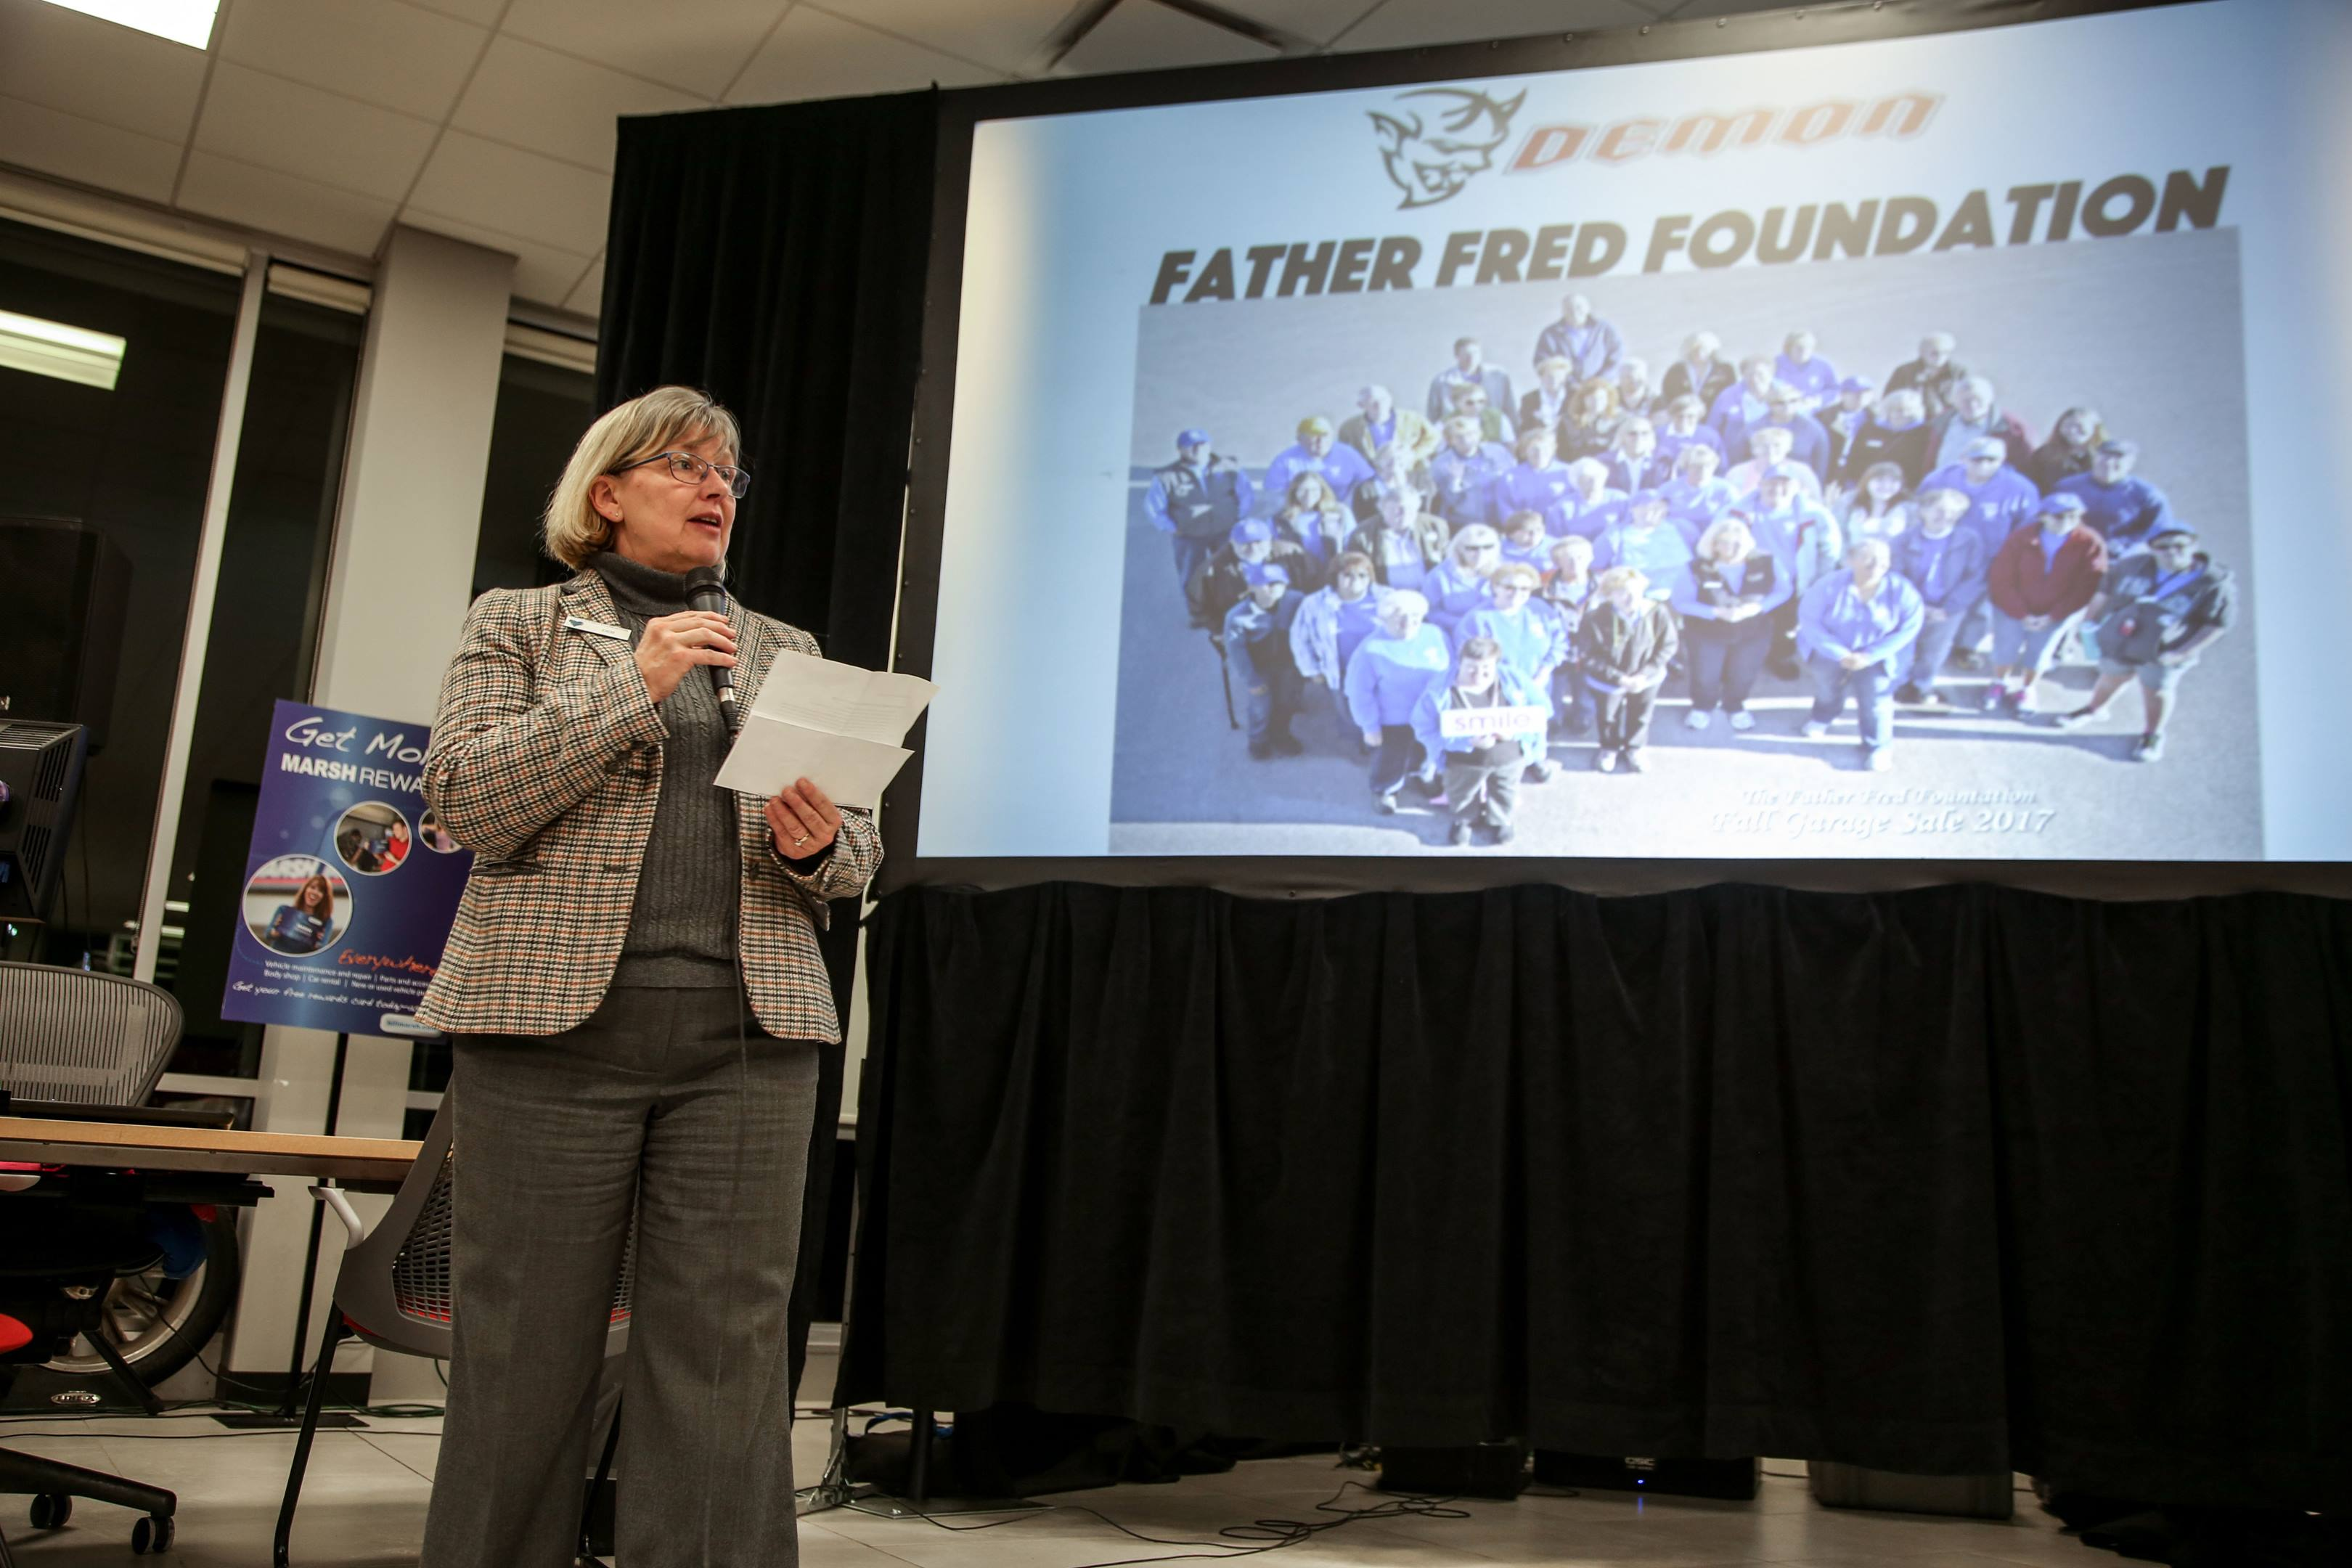 Deb Hasse, director of the Father Fred Foundation